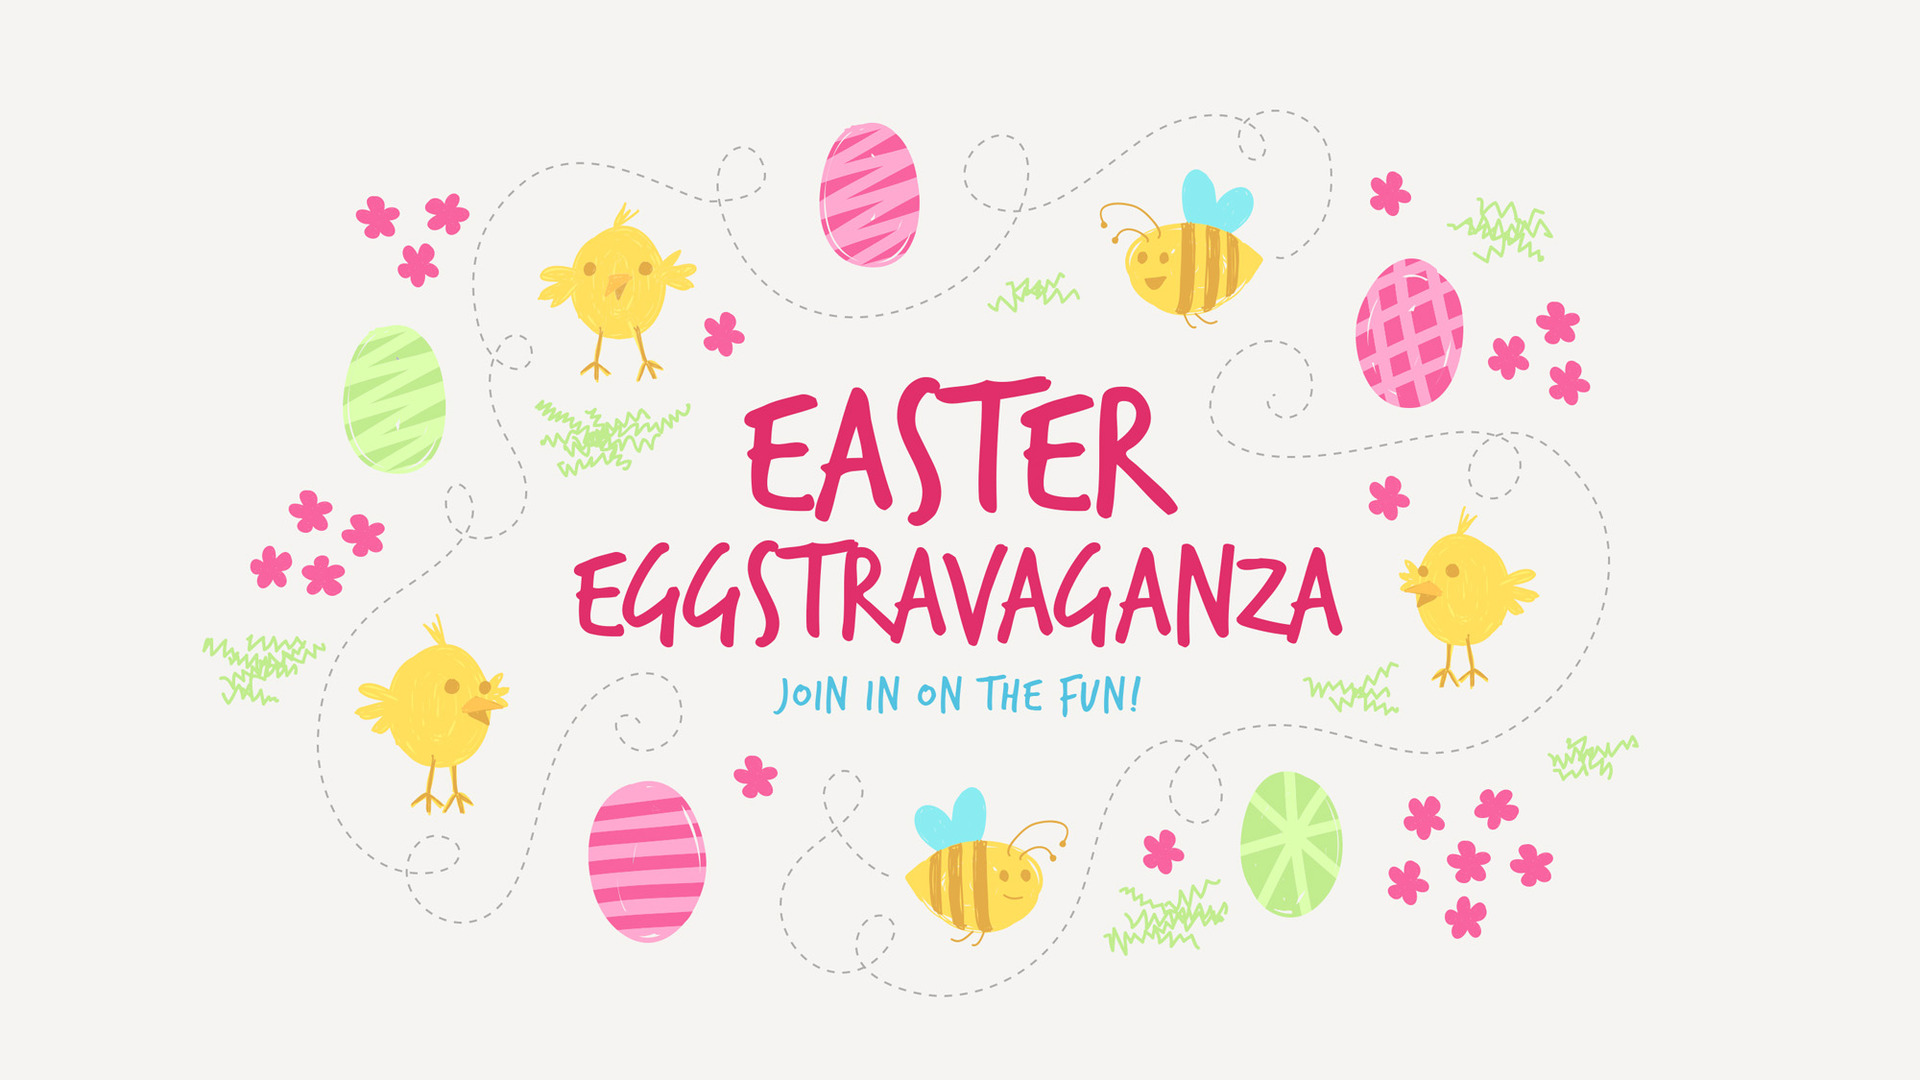 """Come and join us on Easter Sunday for our 1st Annual Easter Eggstravaganza! There will be music, puppets, prizes, candy, egg hunts and bounce houses. We will begin at 9:45 AM in the chapel.  Grades Pre K-5th Grade Welcome!              96              Normal   0           false   false   false     EN-US   X-NONE   X-NONE                                                                                                                                                                                                                                                                                                                                                                                                                                                                                                                                                                                                                                                                                                                                                                                                                                                                                 /* Style Definitions */ table.MsoNormalTable {mso-style-name:""""Table Normal""""; mso-tstyle-rowband-size:0; mso-tstyle-colband-size:0; mso-style-noshow:yes; mso-style-priority:99; mso-style-parent:""""""""; mso-padding-alt:0in 5.4pt 0in 5.4pt; mso-para-margin:0in; mso-para-margin-bottom:.0001pt; mso-pagination:widow-orphan; font-size:12.0pt; font-family:Calibri; mso-ascii-font-family:Calibri; mso-ascii-theme-font:minor-latin; mso-hansi-font-family:Calibri; mso-hansi-theme-font:minor-latin;}      Click Here to Register"""